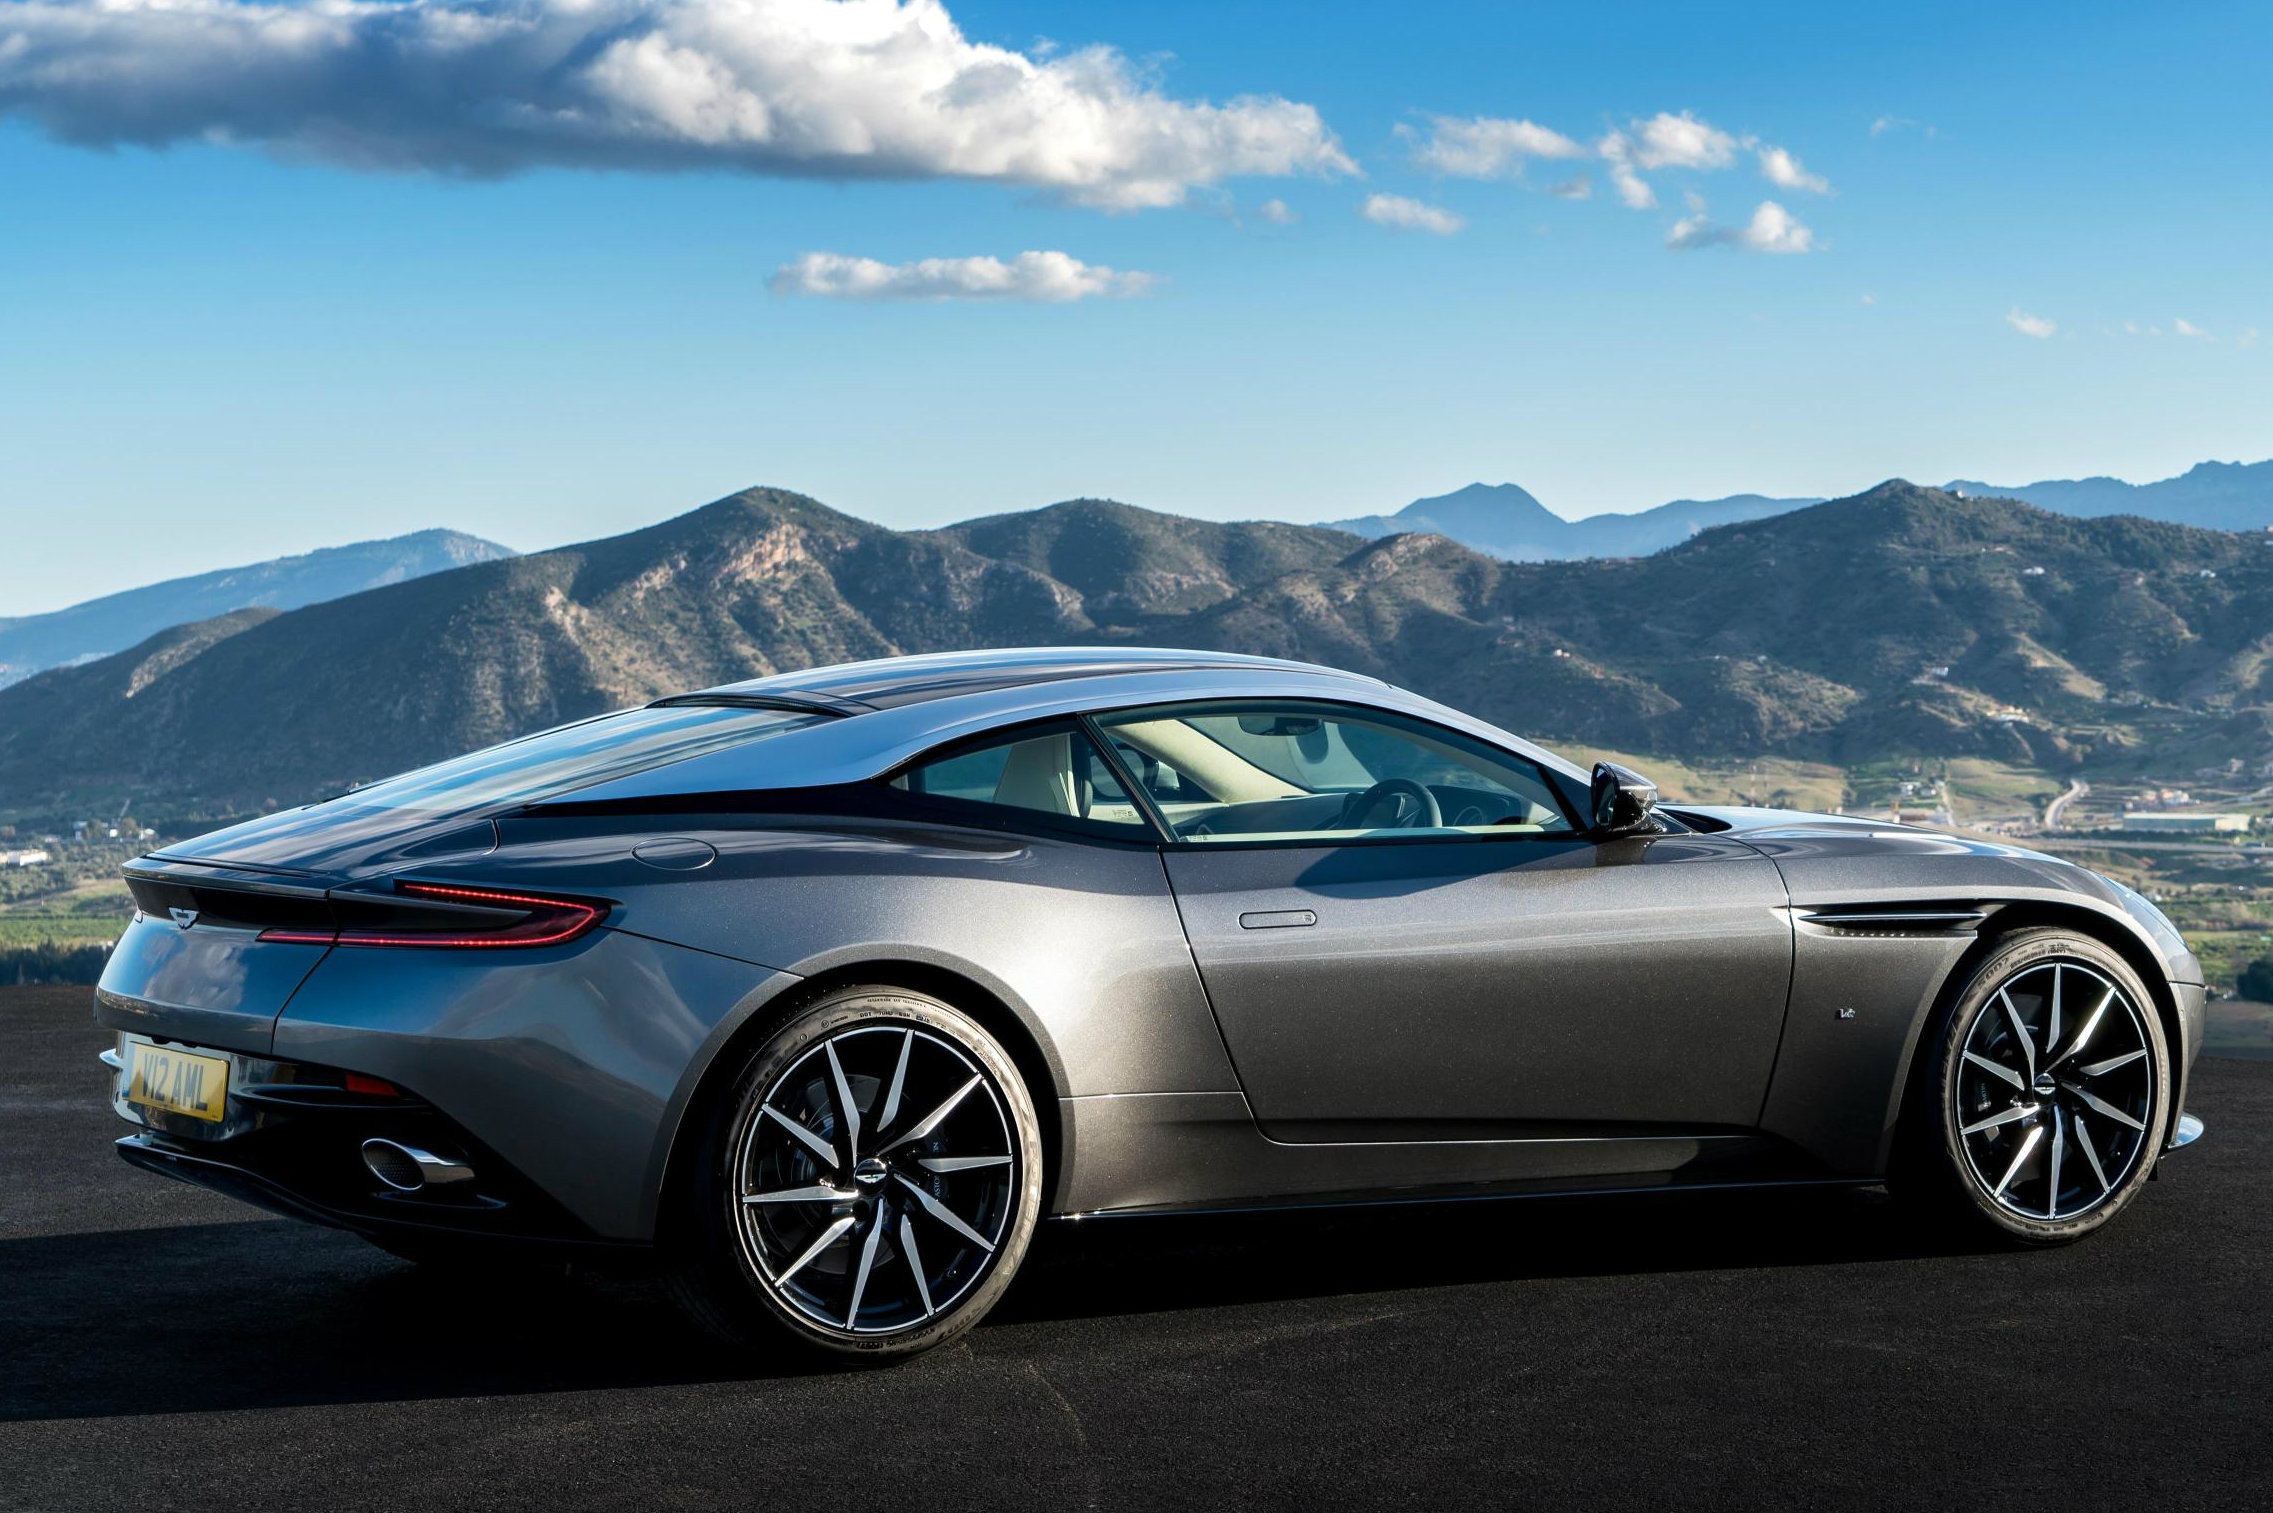 See The New Aston Martin DB11 In Action Moto Networks